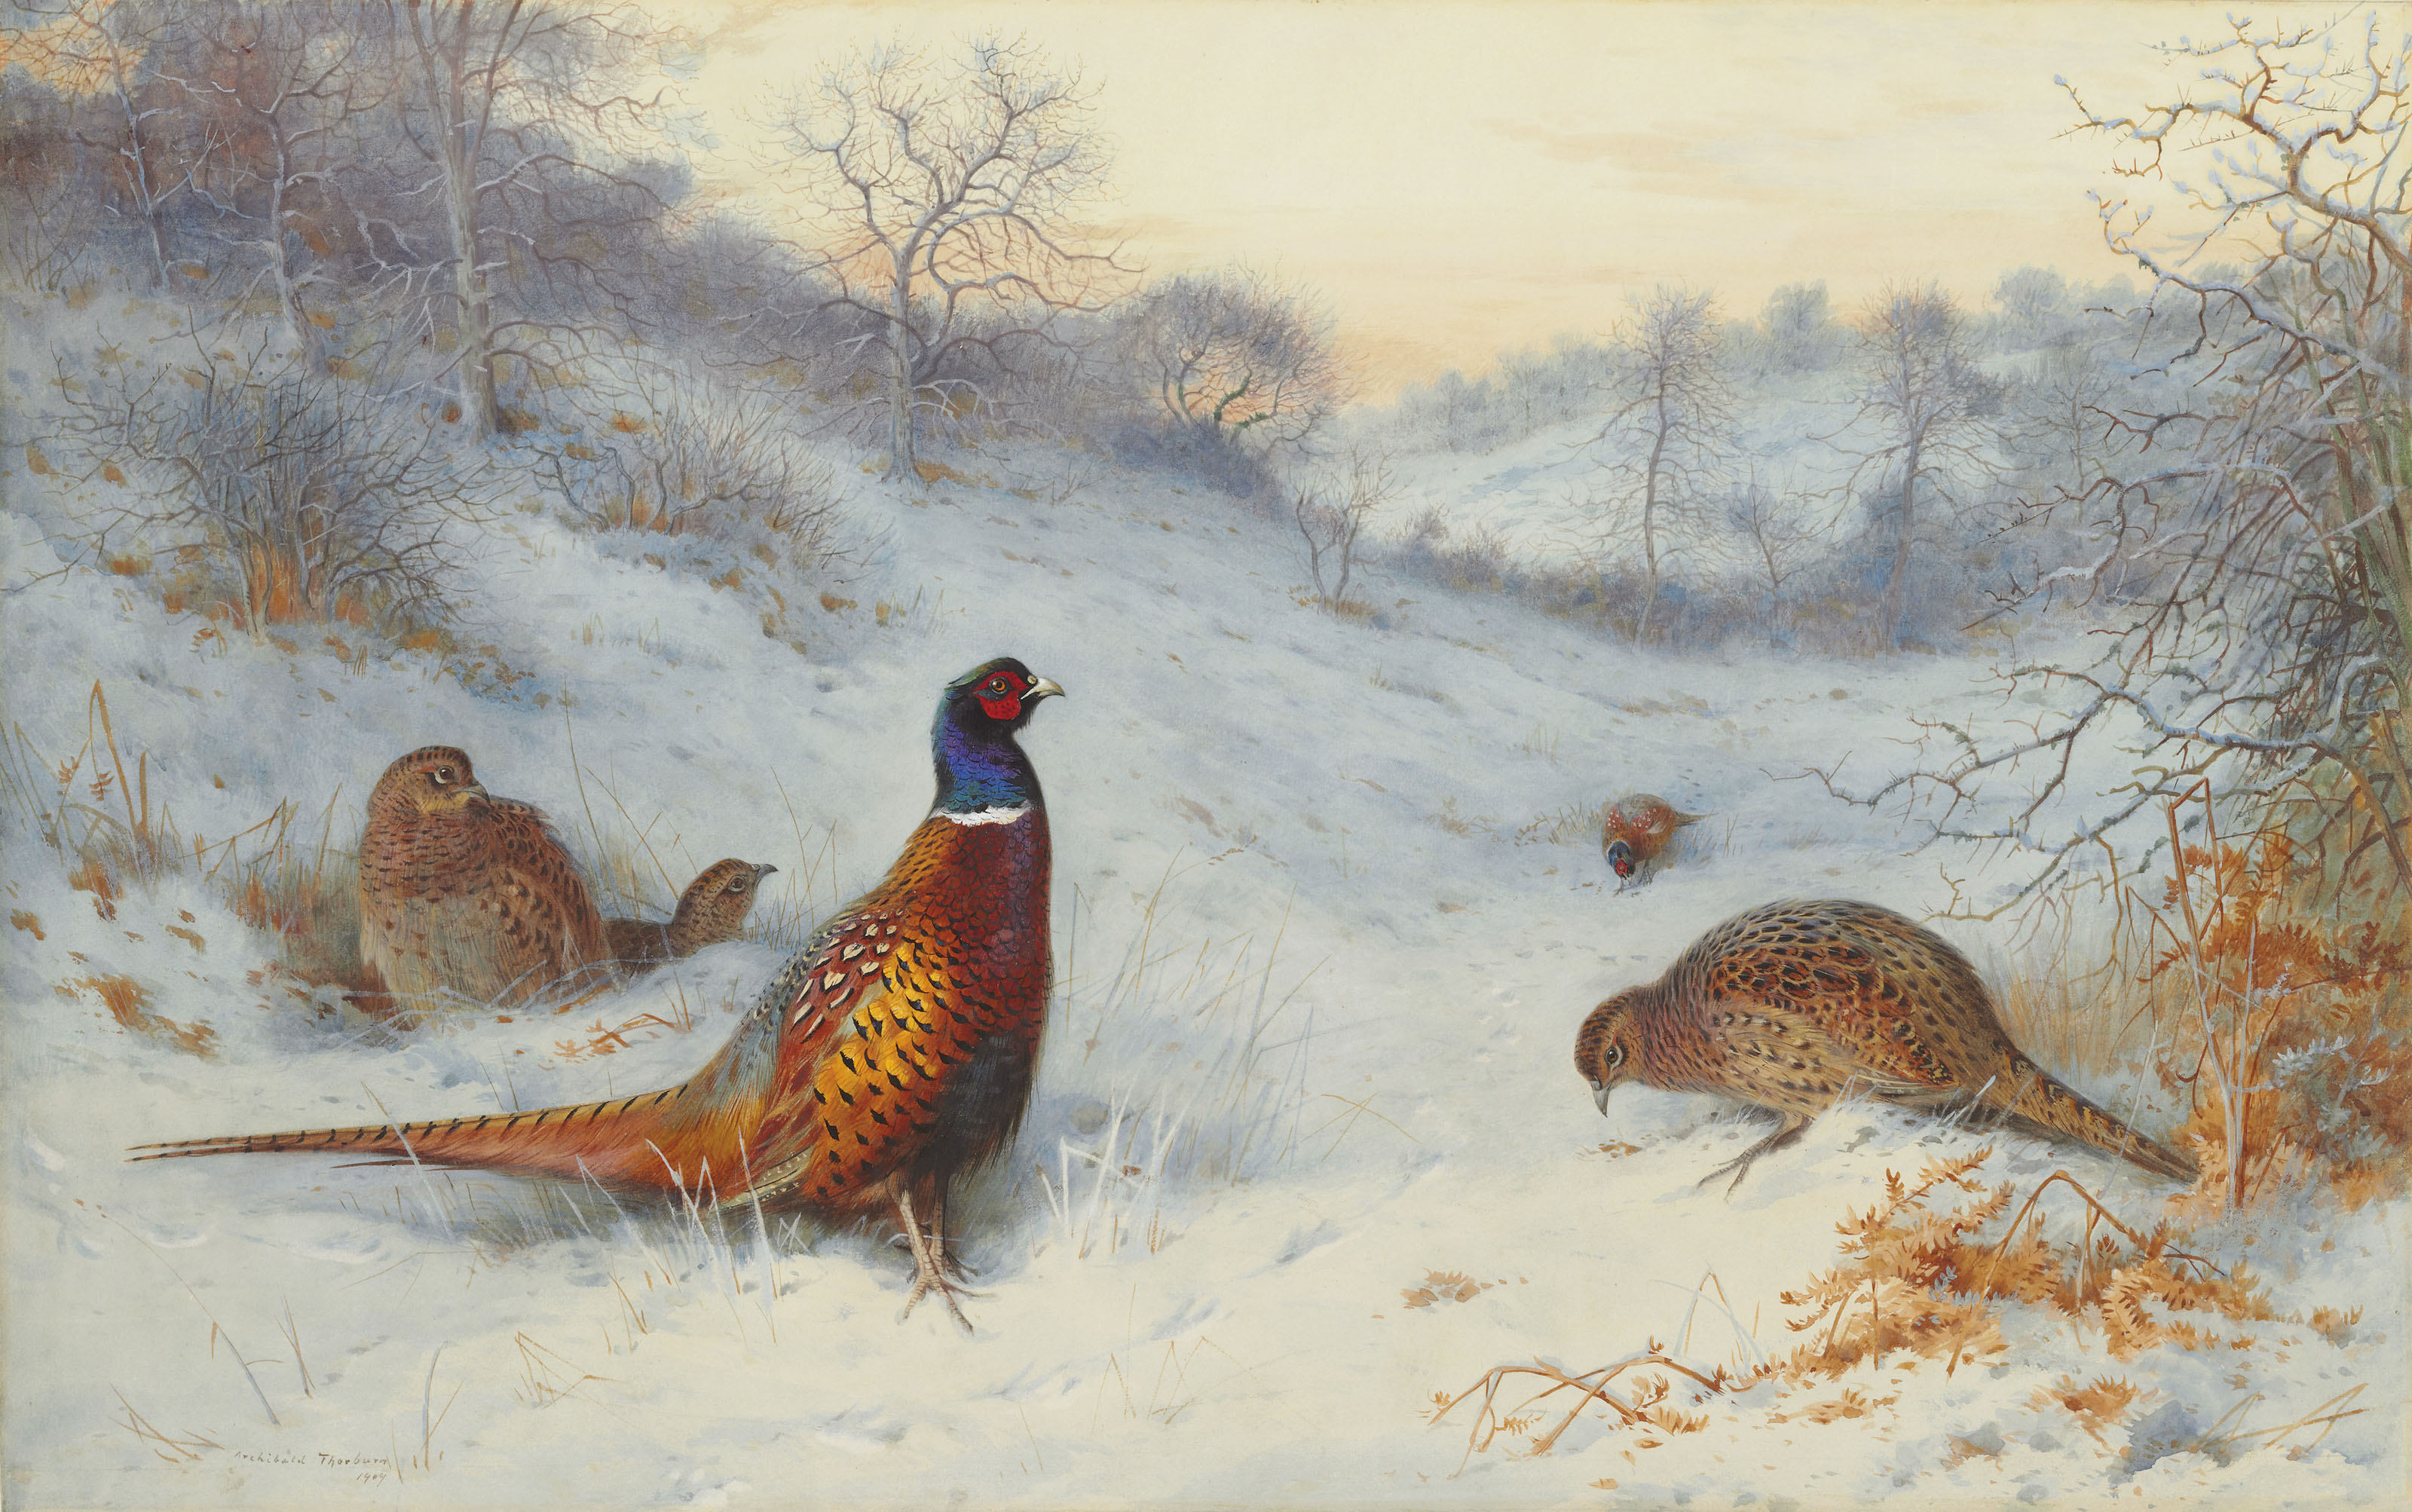 Pheasant in the snow